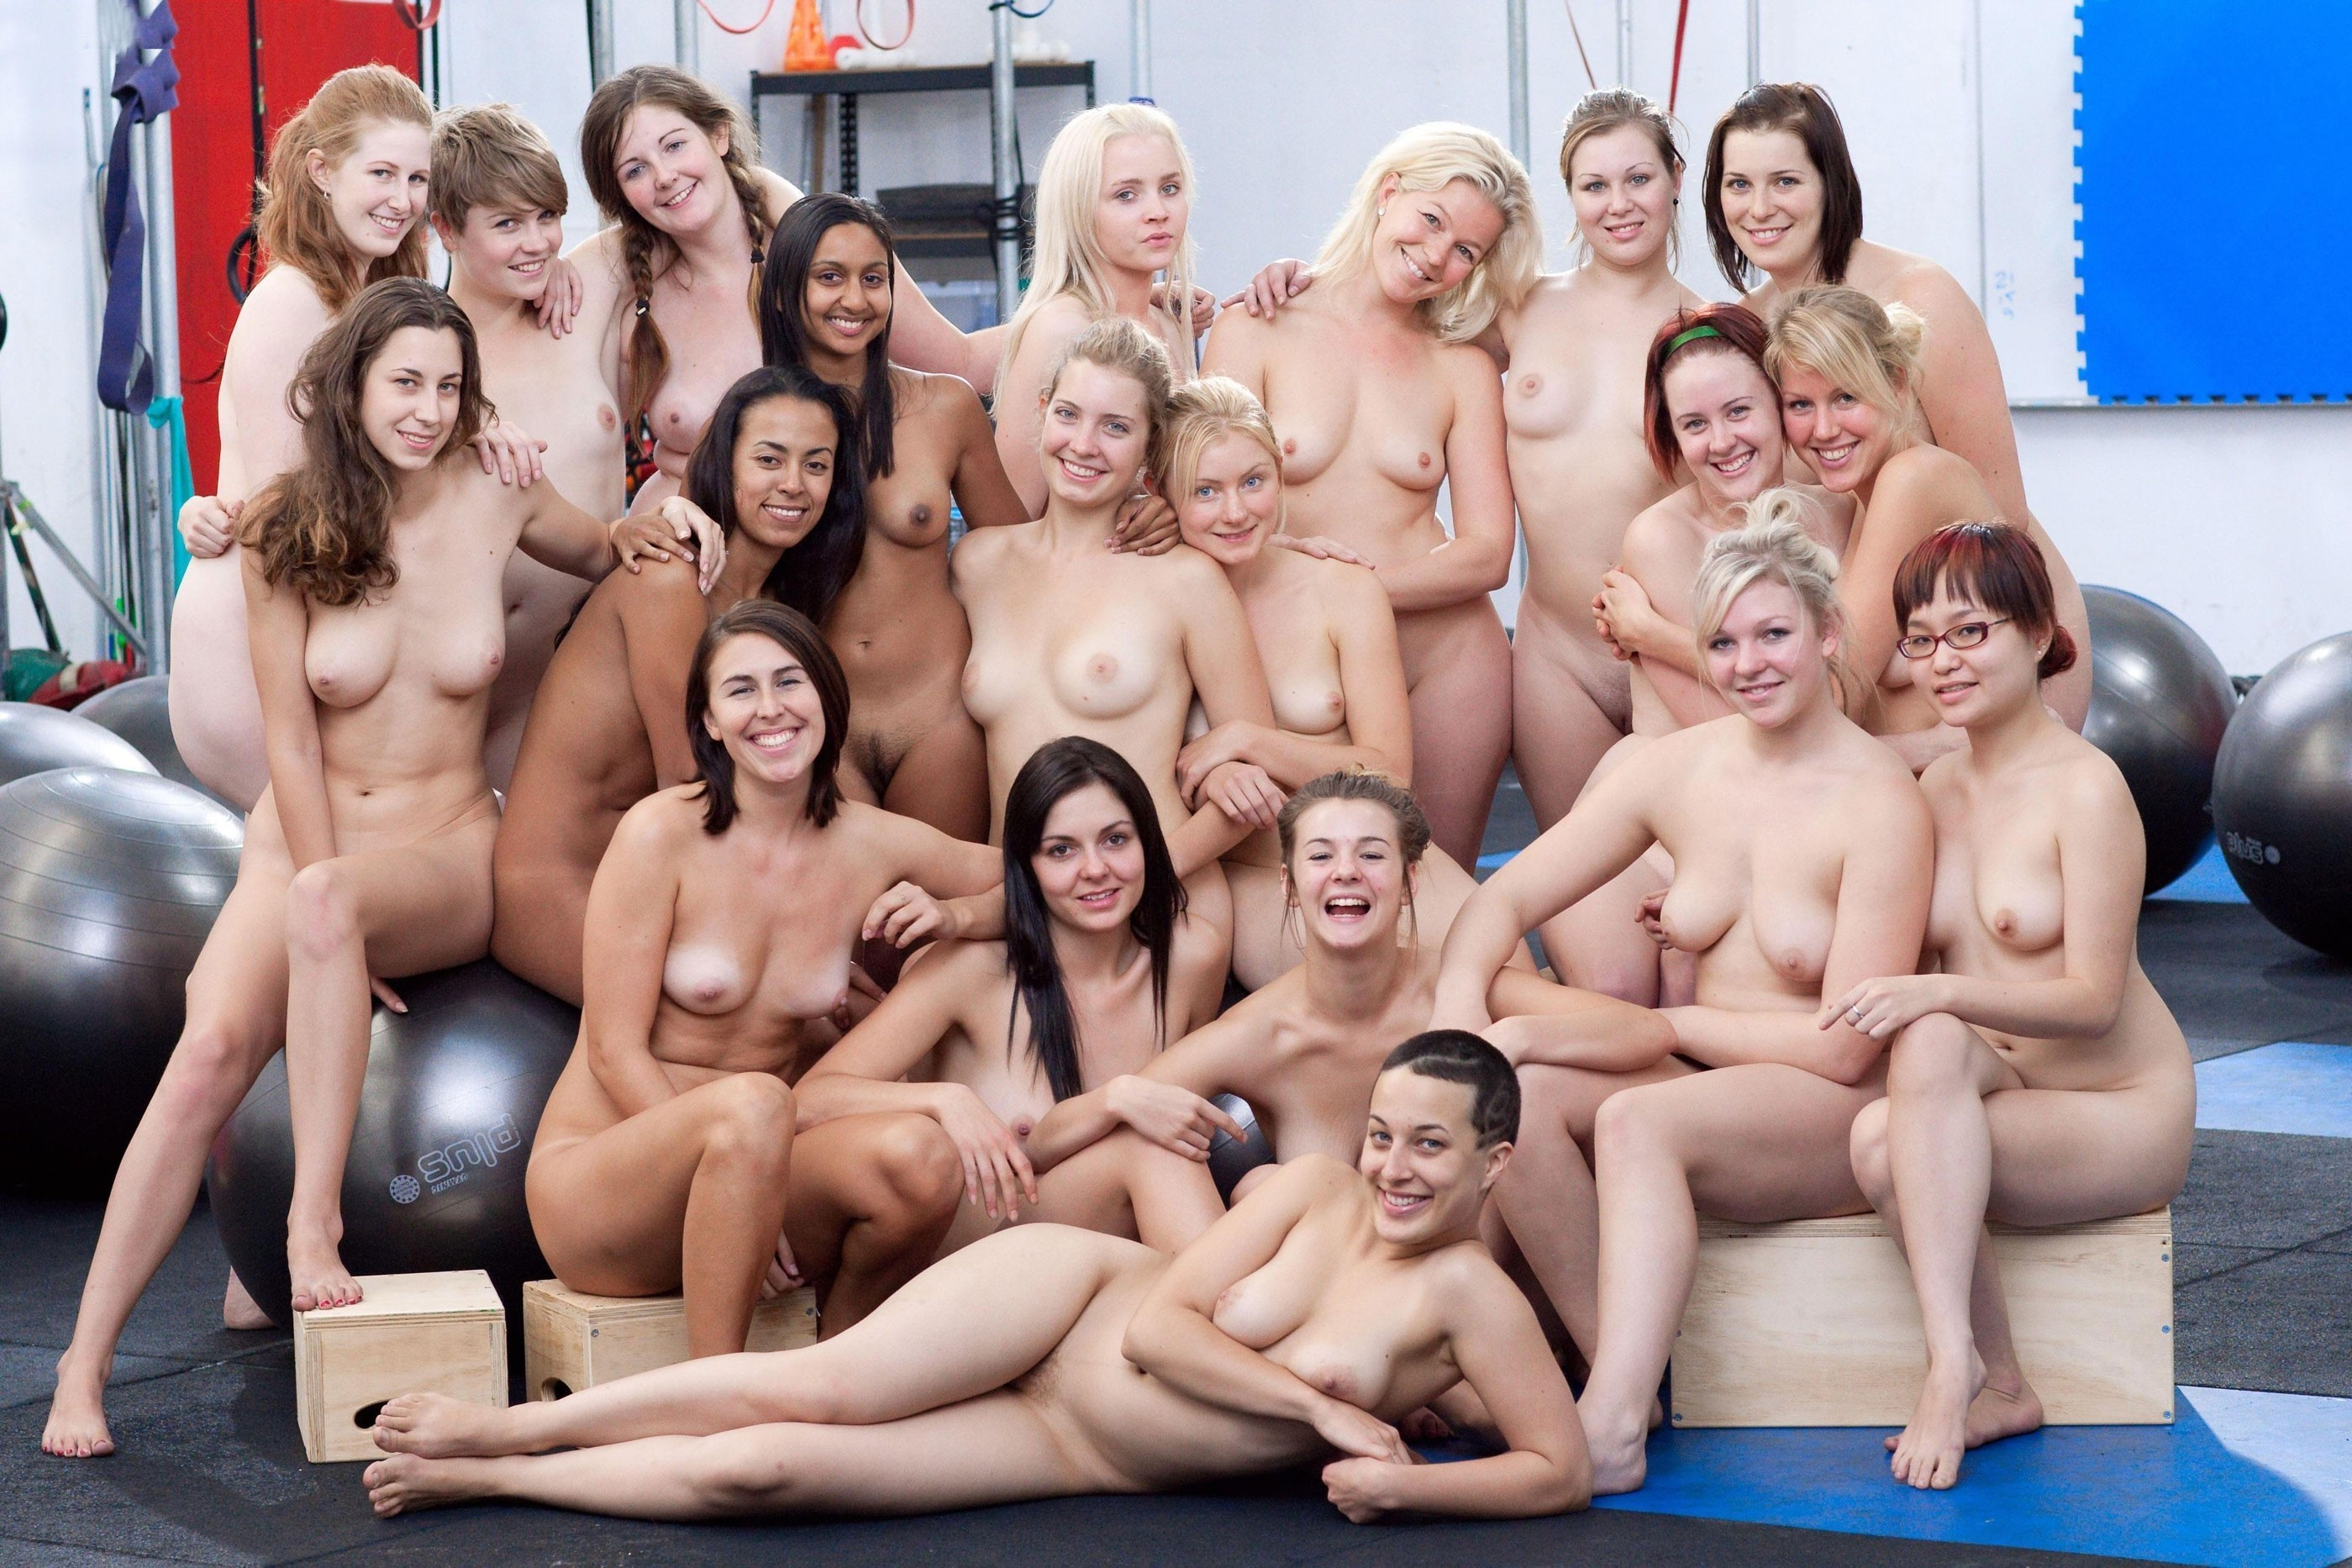 naked-girls-in-group-mix-vol3-33